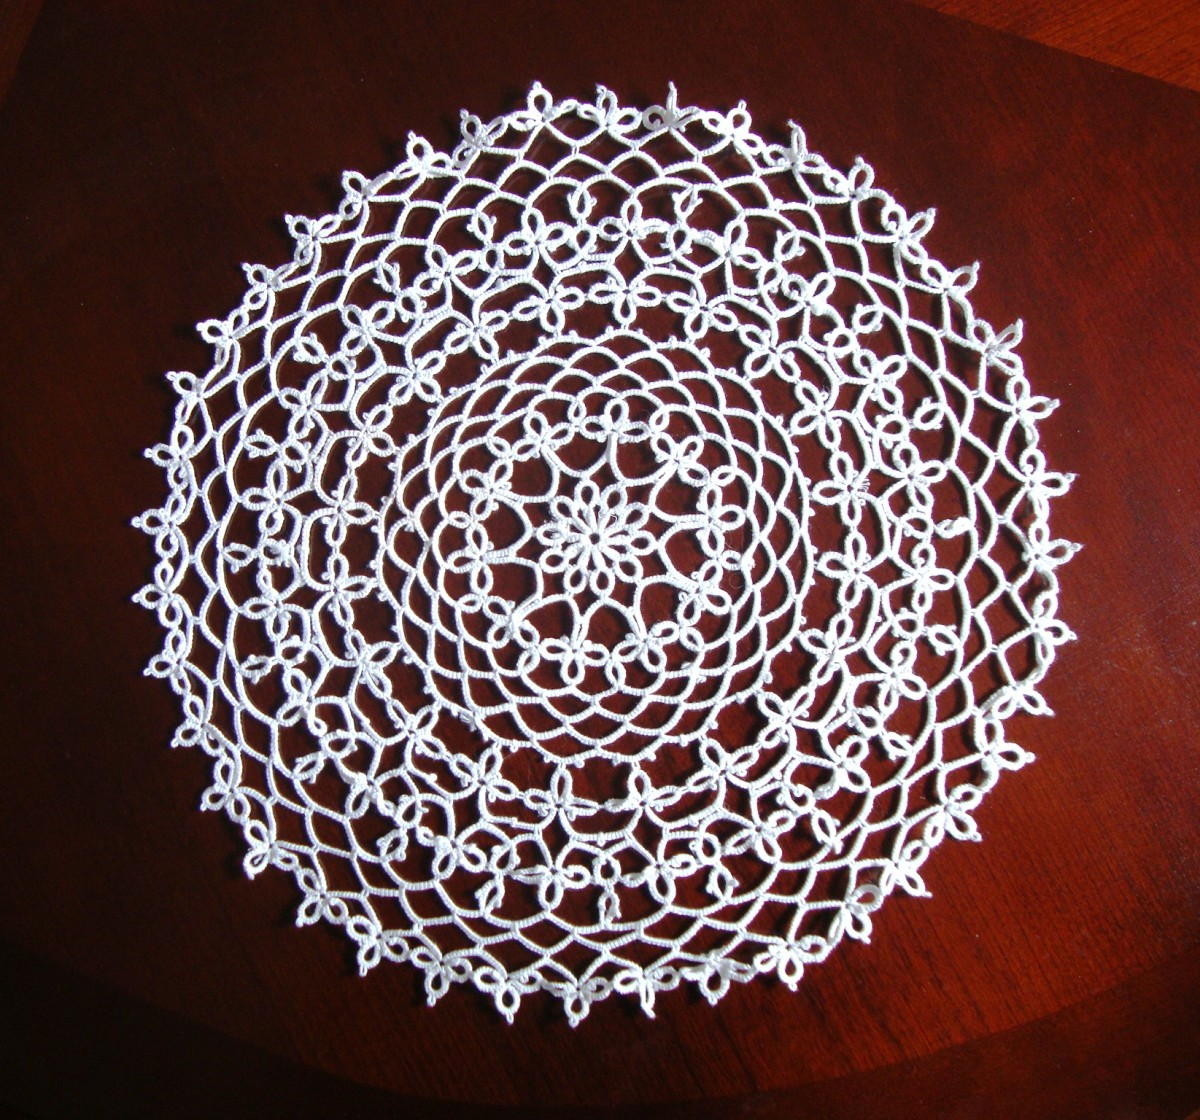 A tatted doily I found in a second-hand store. An experienced doily maker, I knew that it hadn't been done with crochet. I soon learned that this type of doily was produced through tatting. It now lives in my china cabinet.